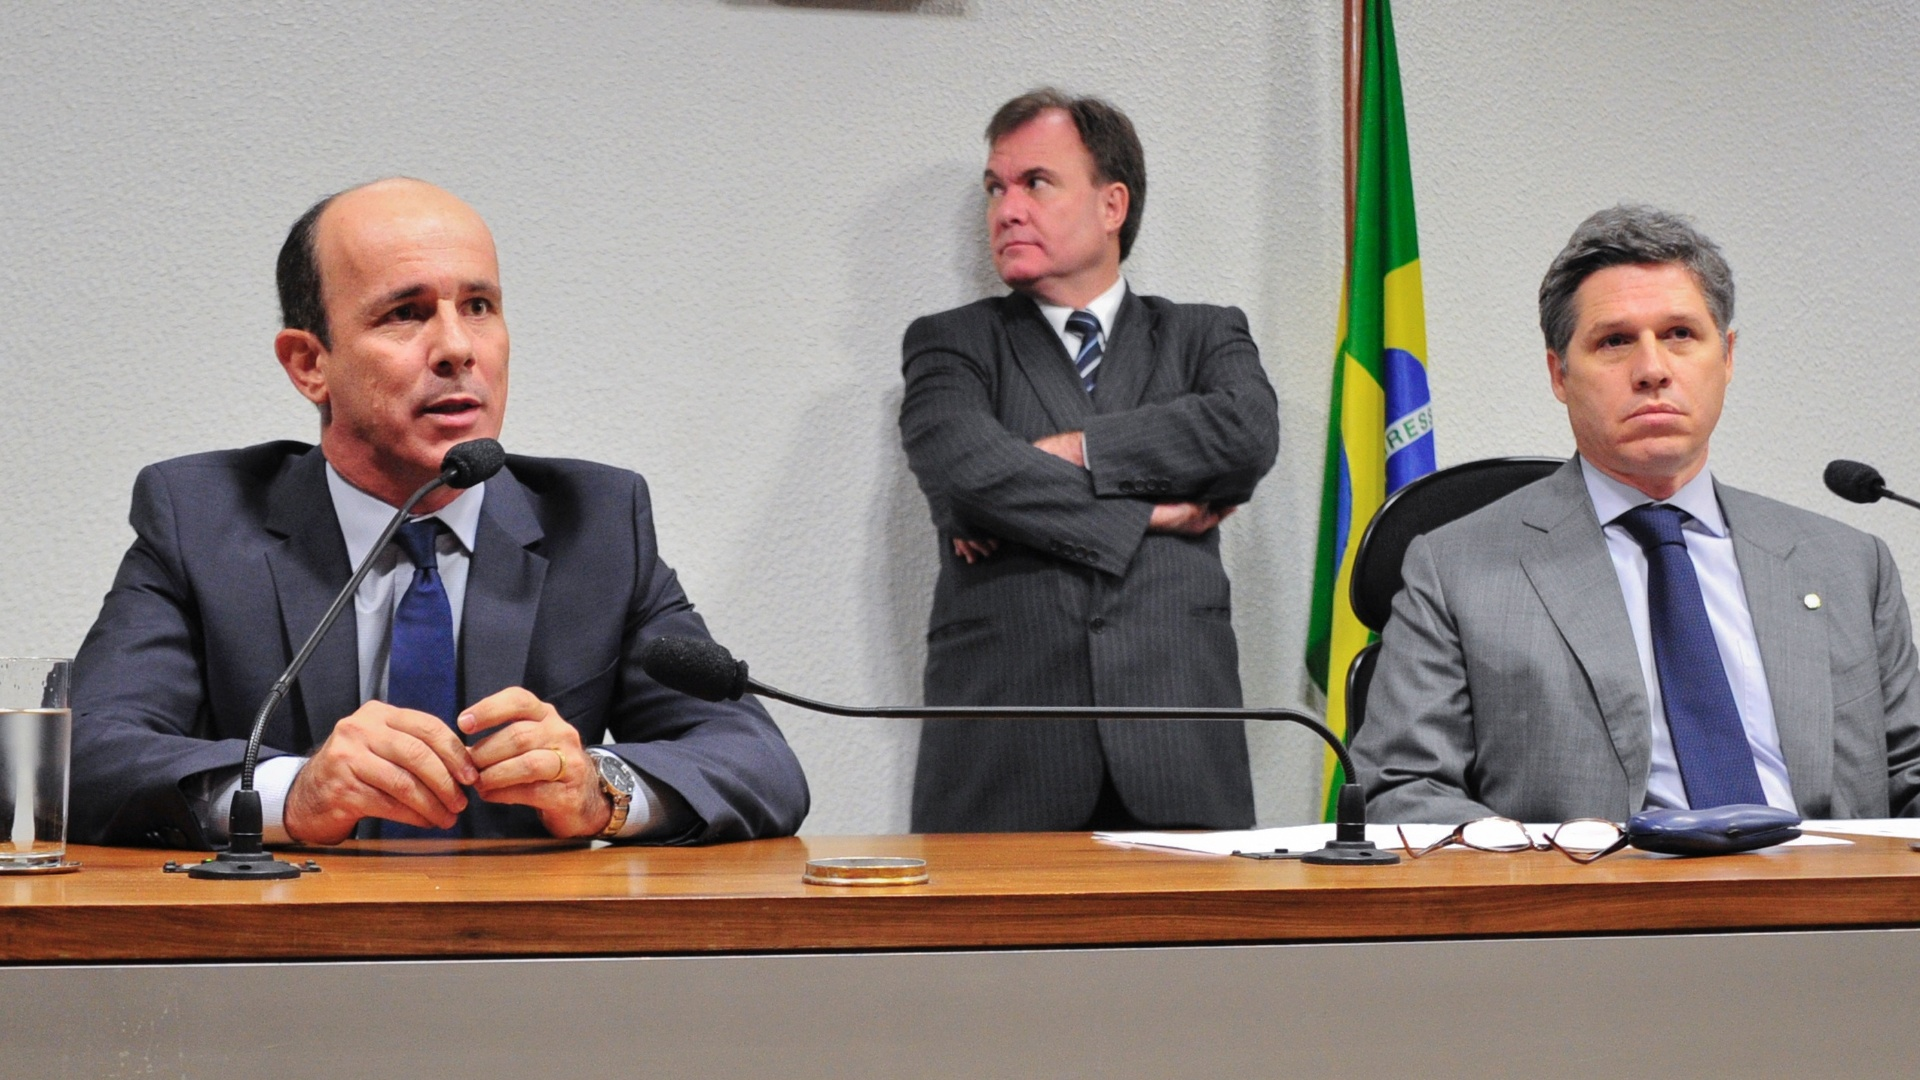 15.ago.2012 - O ex-presidente do Departamento de Trnsito (Detran) de Gois, Edivaldo Cardoso de Paula (esq.) depe na Comisso Parlamentar de Inqurito (CPI) mista do Cachoeira, em Braslia. Ele optou por no responder s perguntas. Cardoso aparece nas gravaes feitas pela Polcia Federal na operao Montecarlo, que investiga o envolvimento de Cachoeira com agentes pblicos e privados 